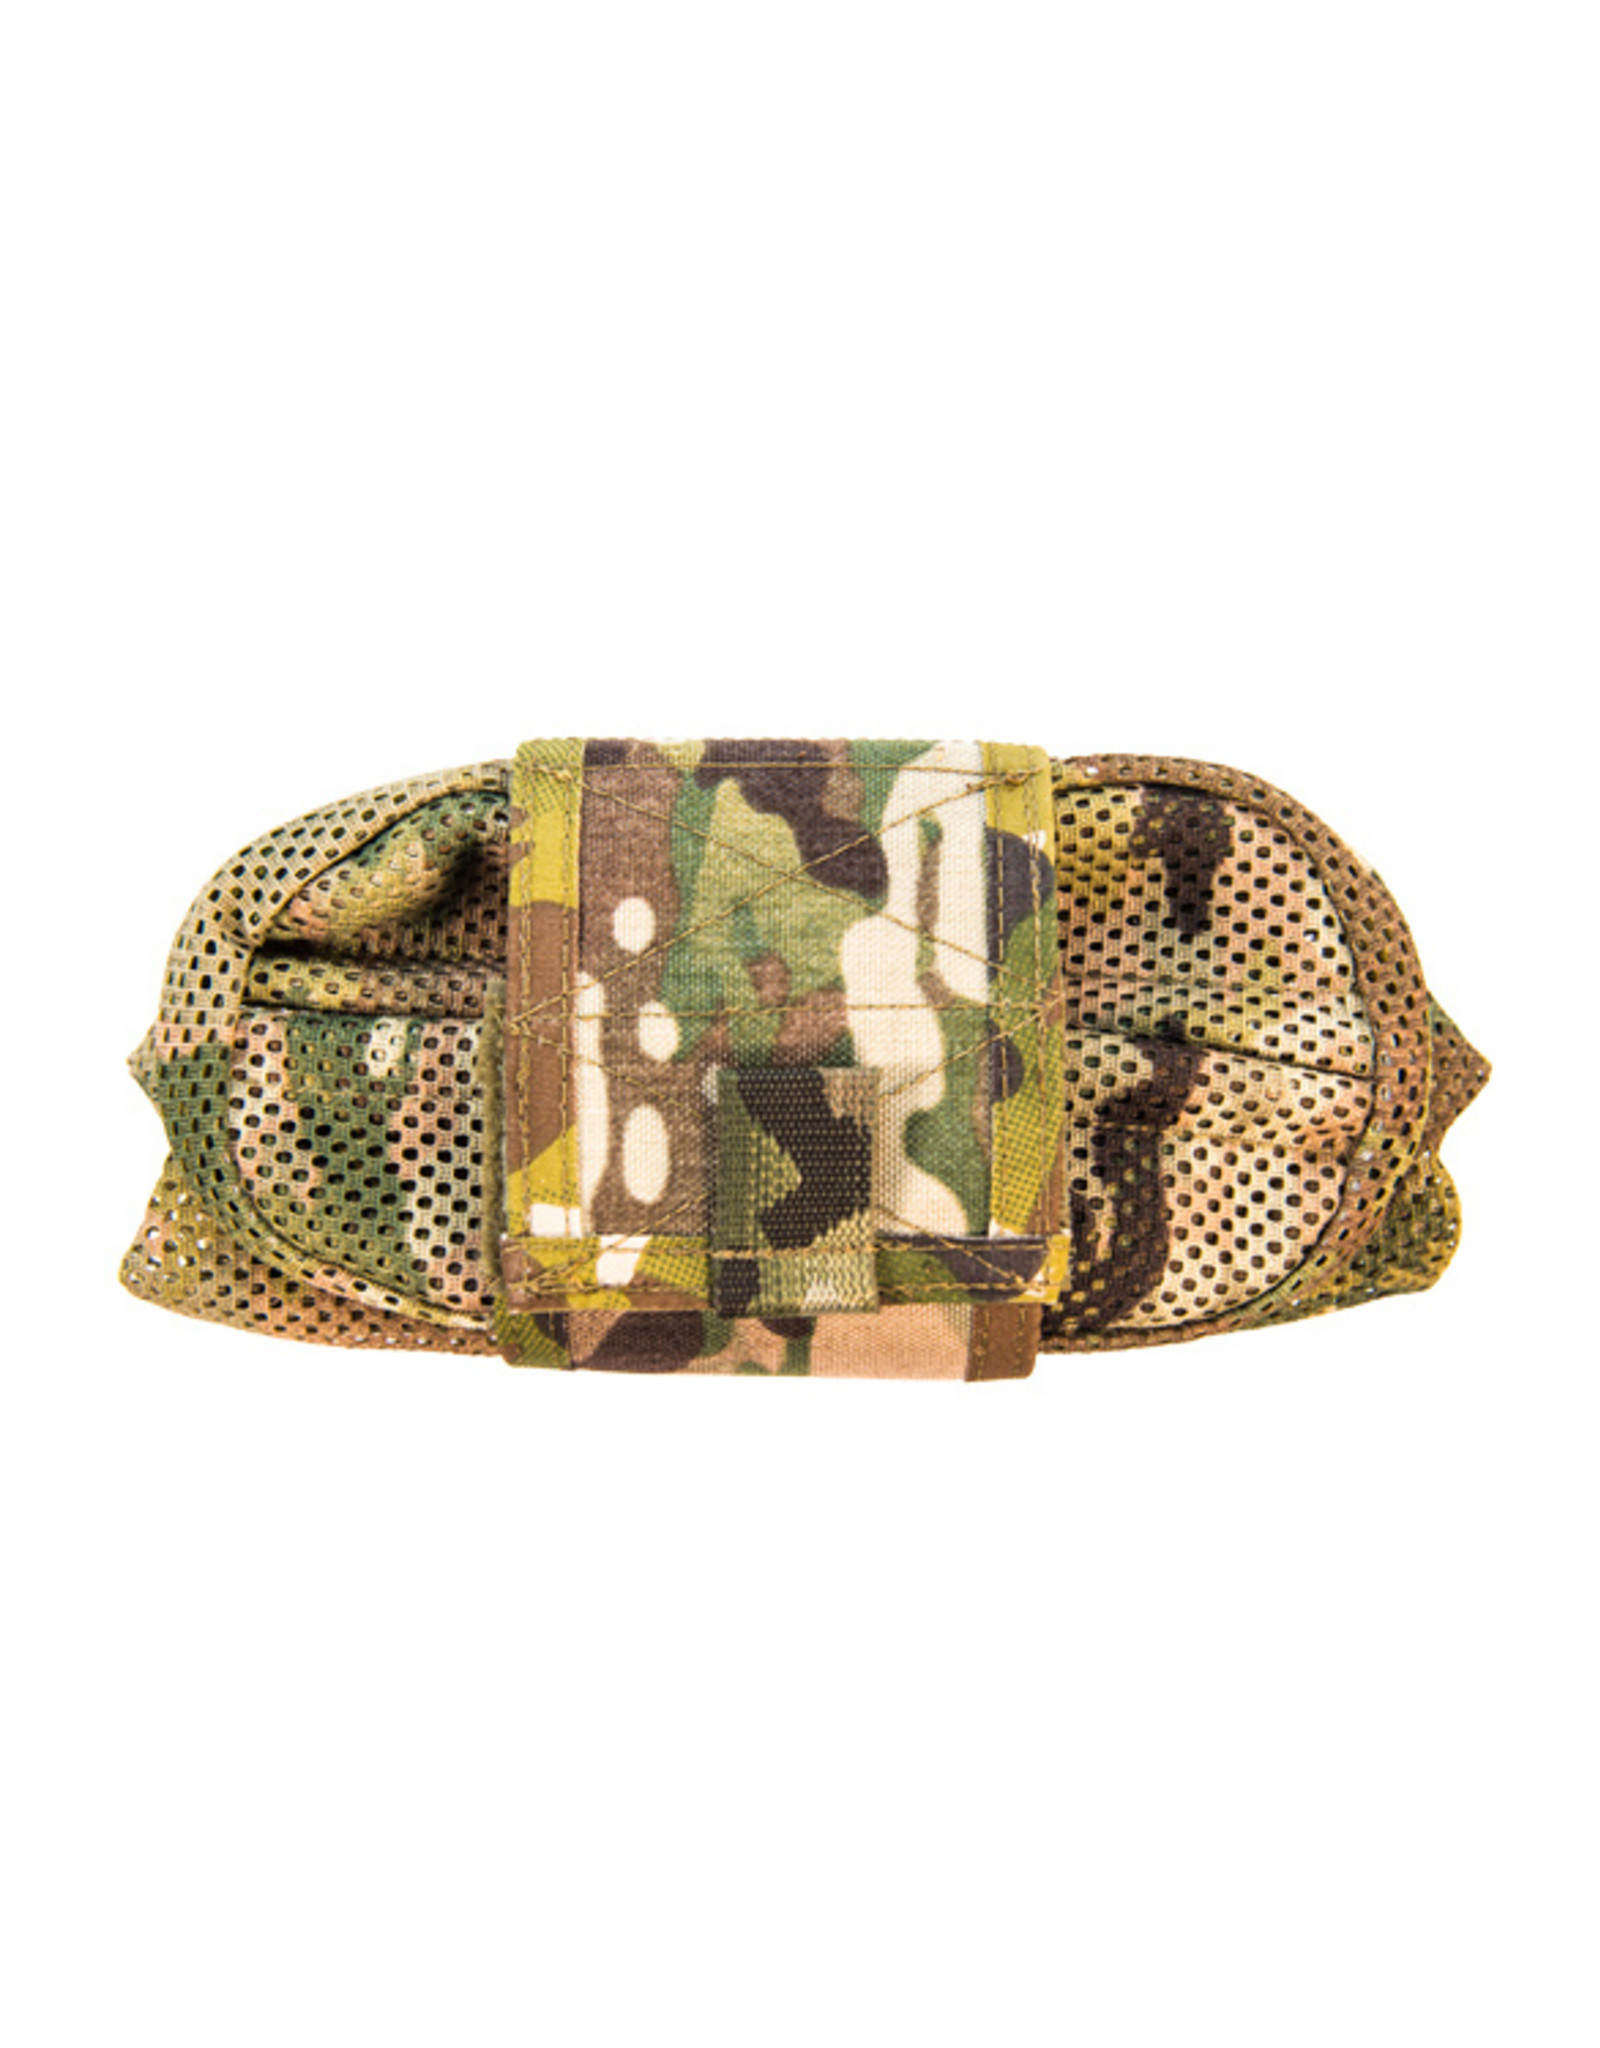 HIGH SPEED GEAR HIGH SPEED GEAR (HSGI) MAG-NET DUMP POUCH V.2 MOLLE